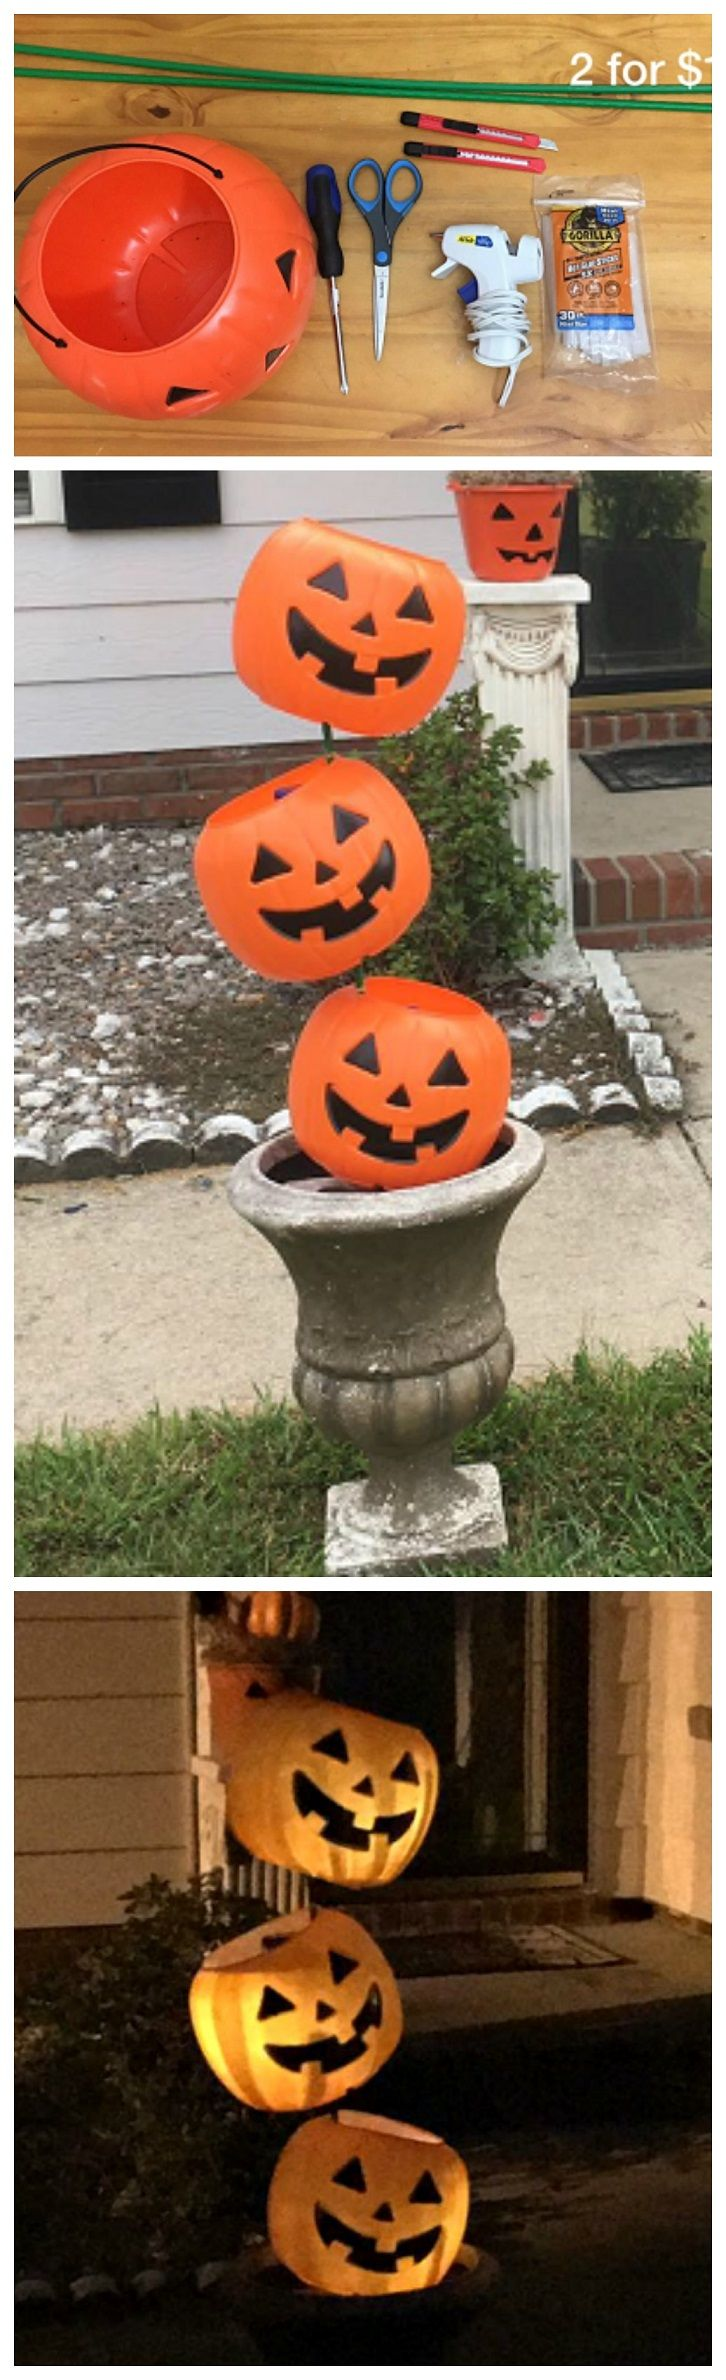 tipsy plastic pumpkin decoration homemade halloween - At Home Halloween Decorations